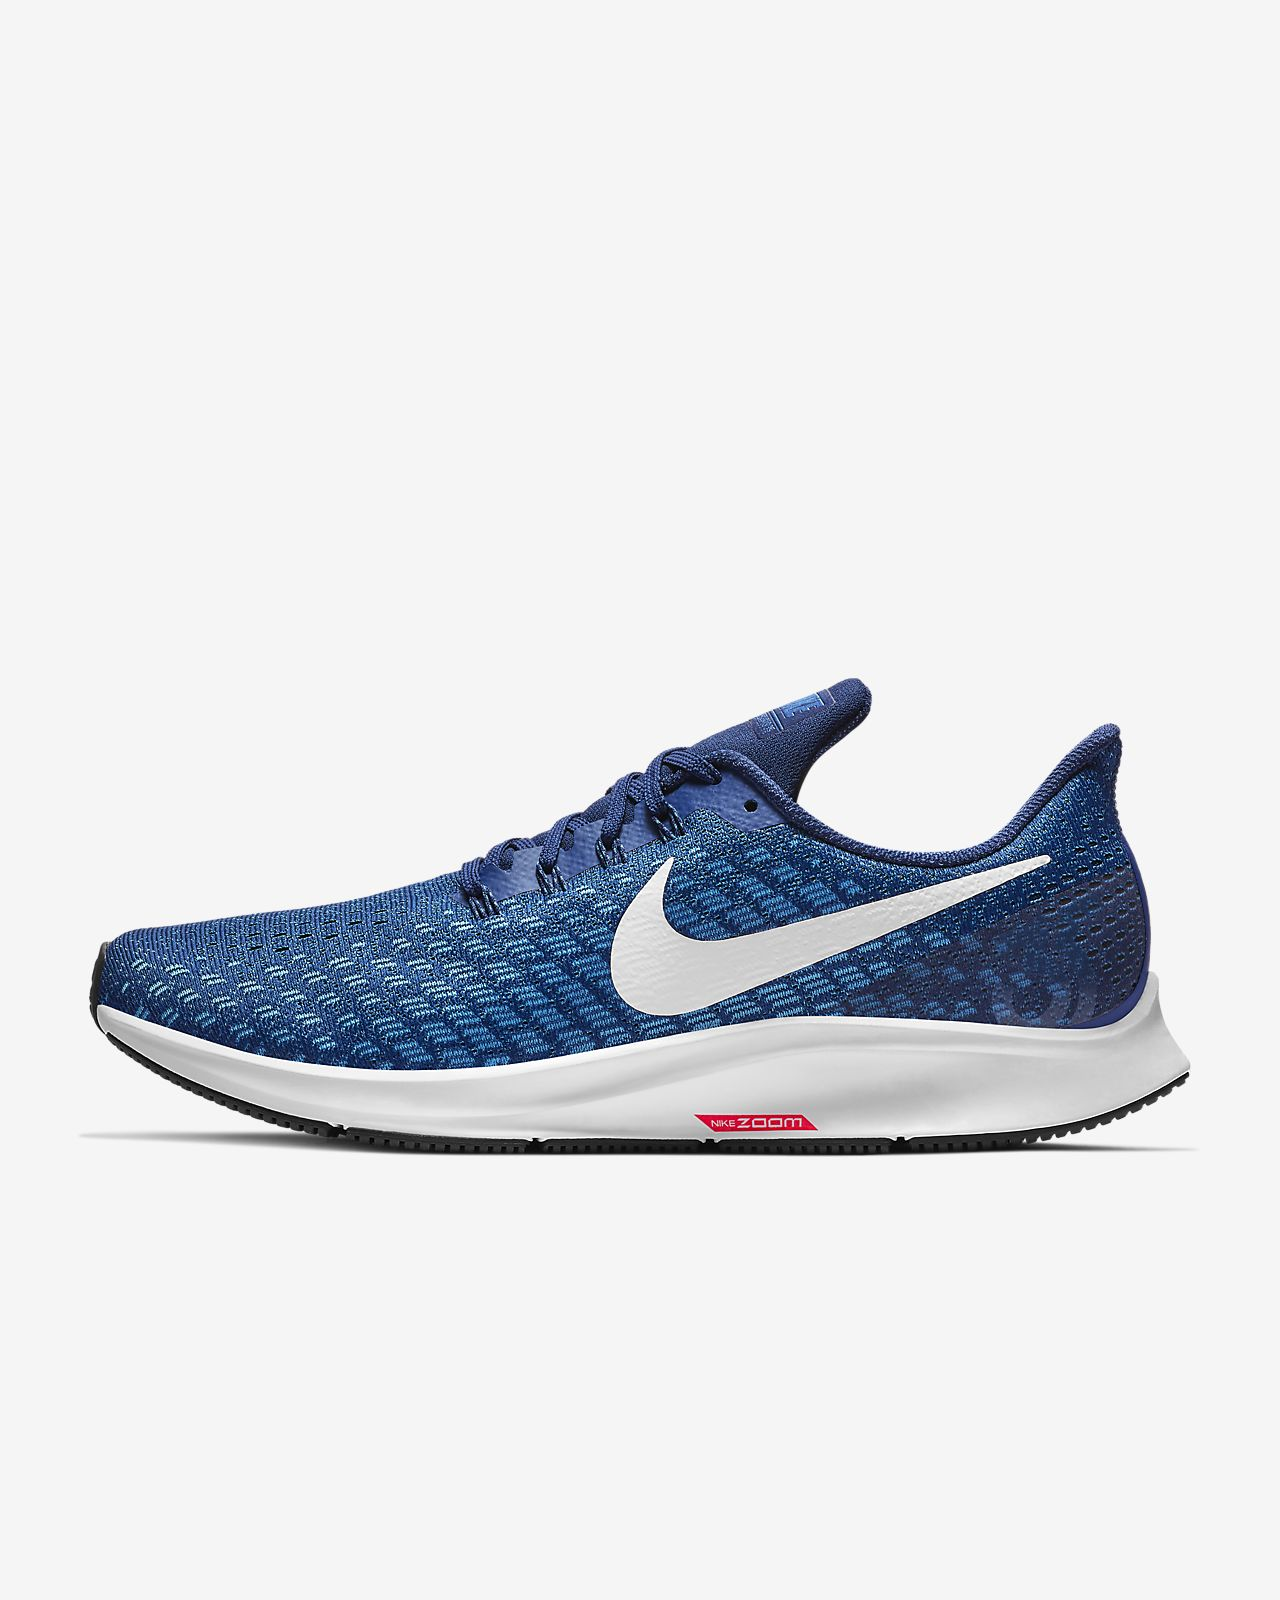 d2f3032af12a Nike Air Zoom Pegasus 35 Men s Running Shoe. Nike.com AU